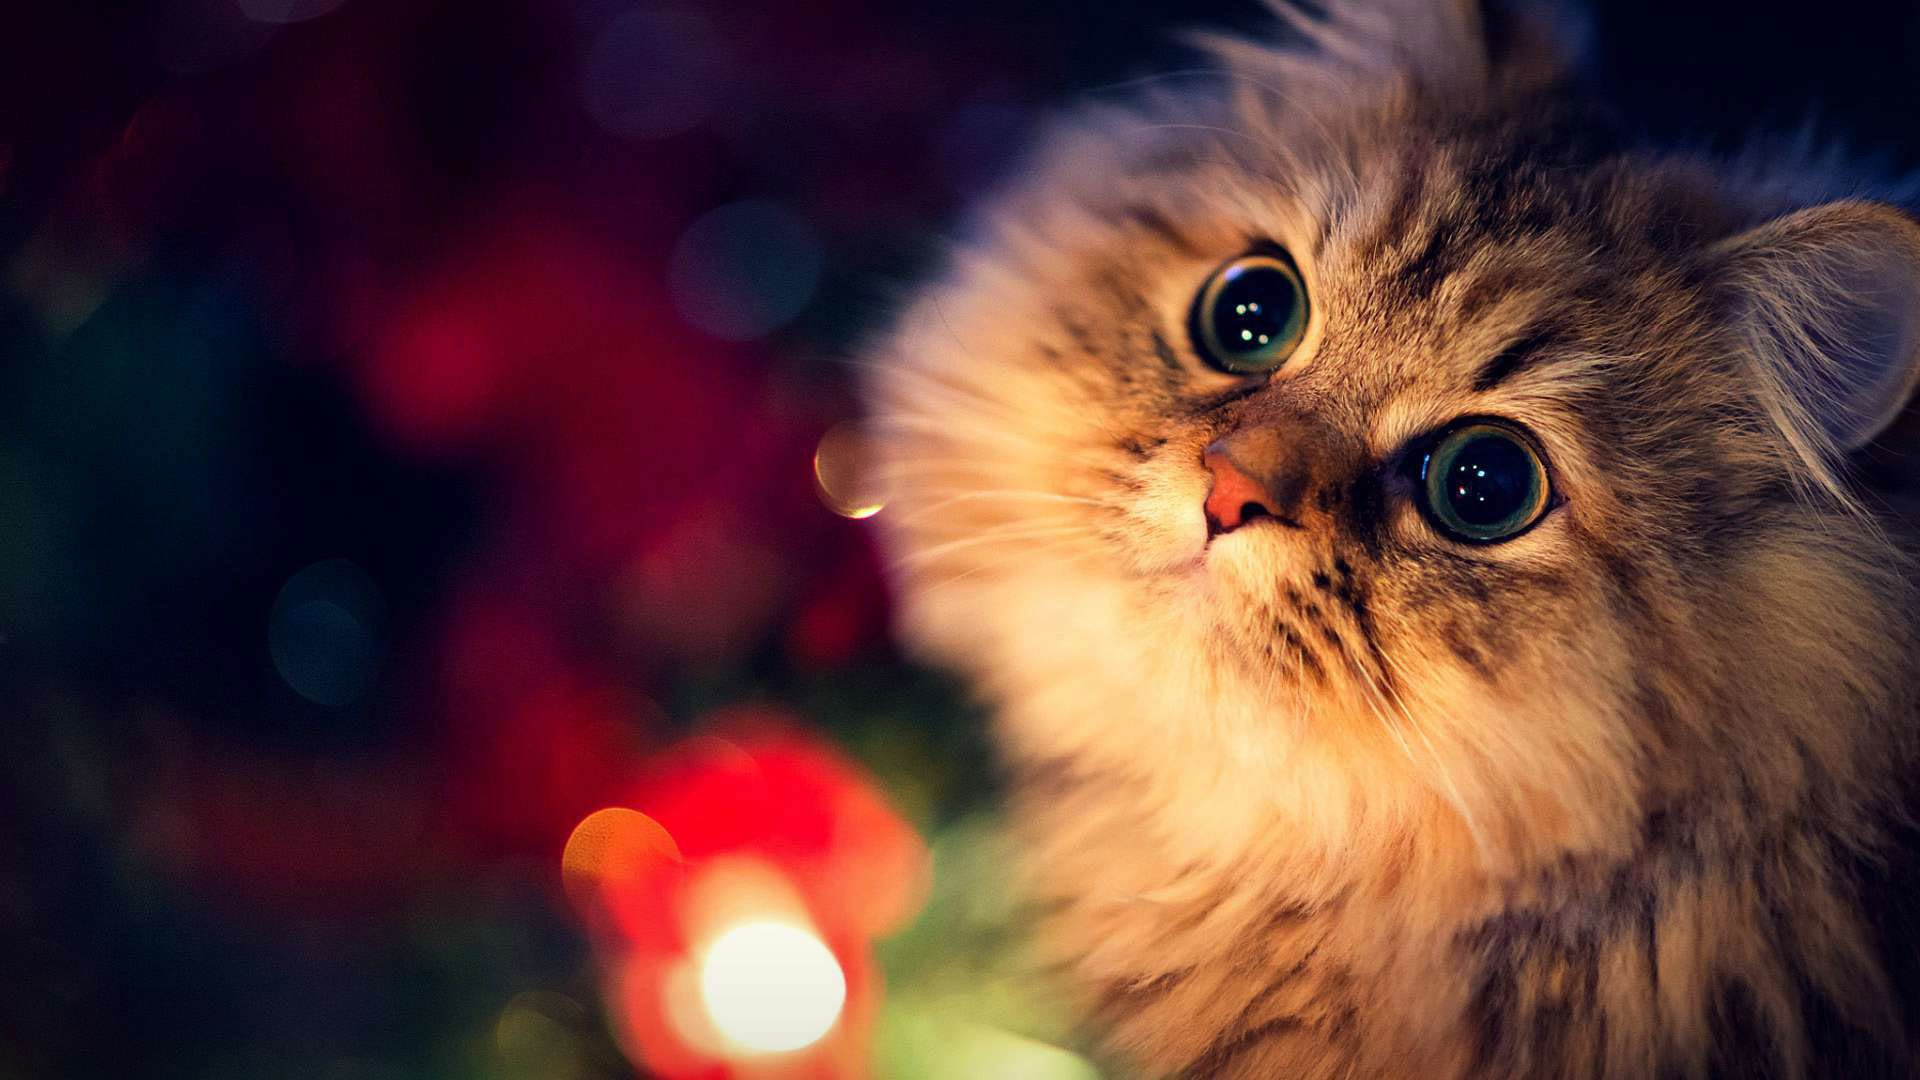 Res Christmas Cat Wallpapers